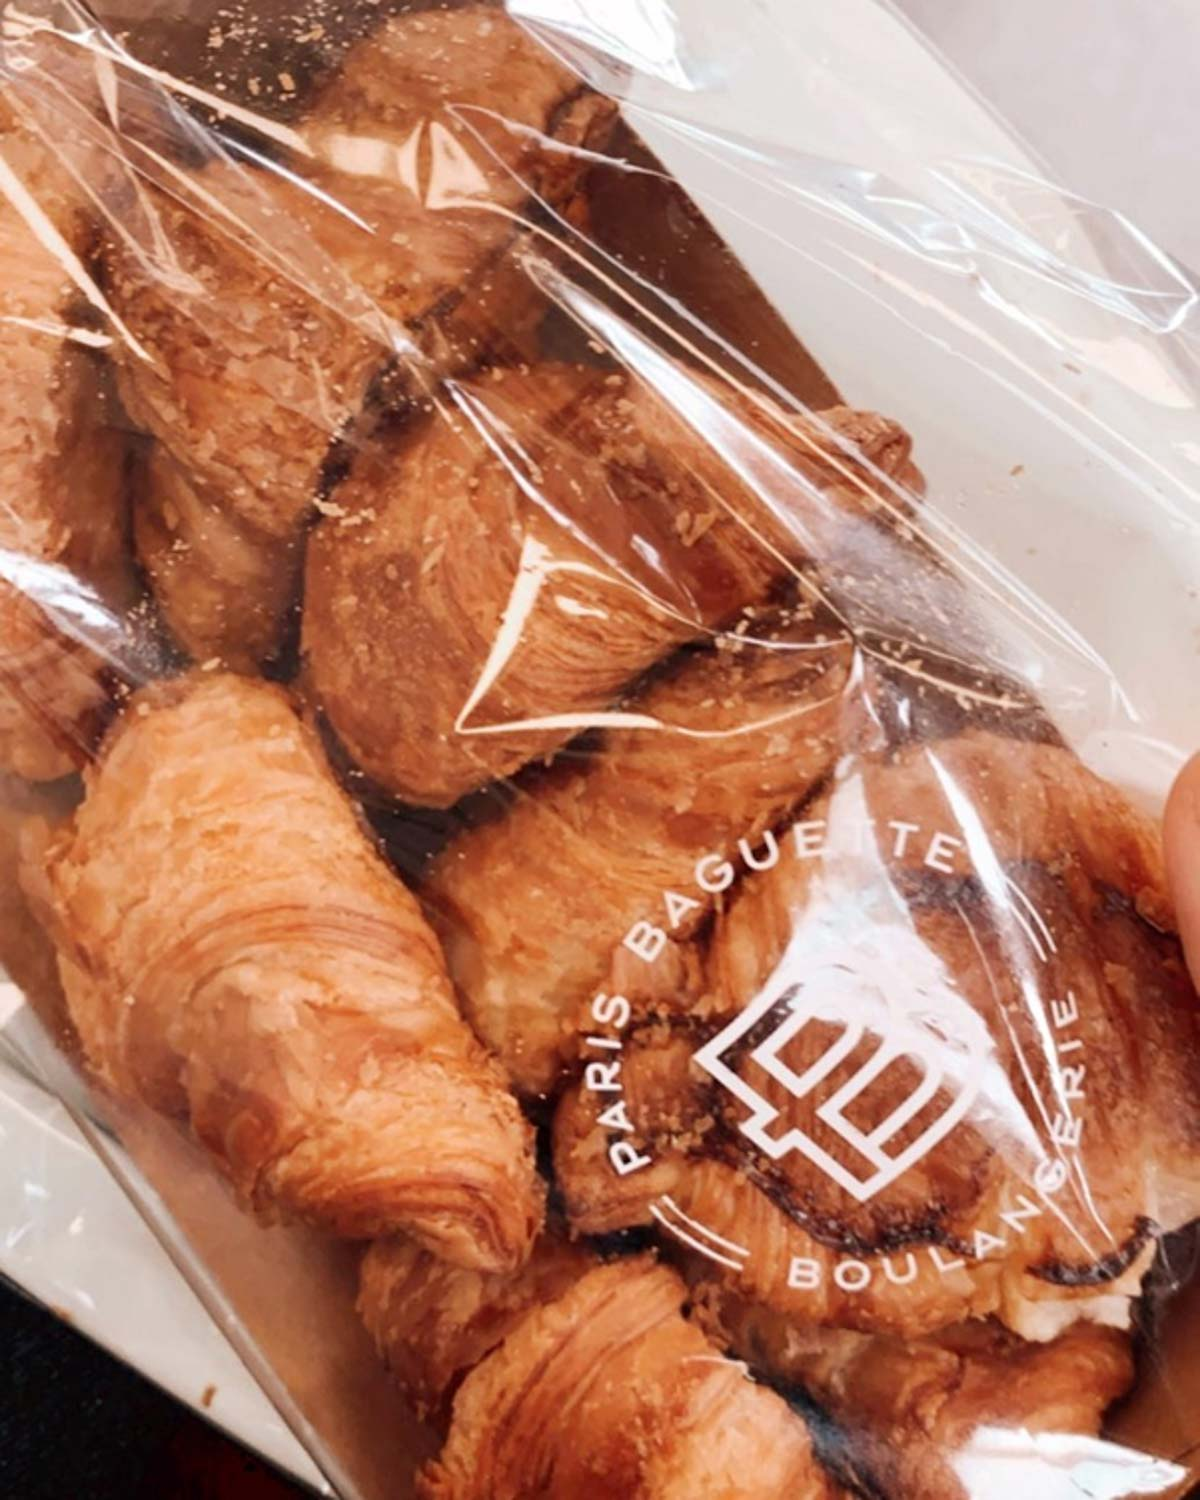 Paris Baguette 5-for-5 - mini croissants